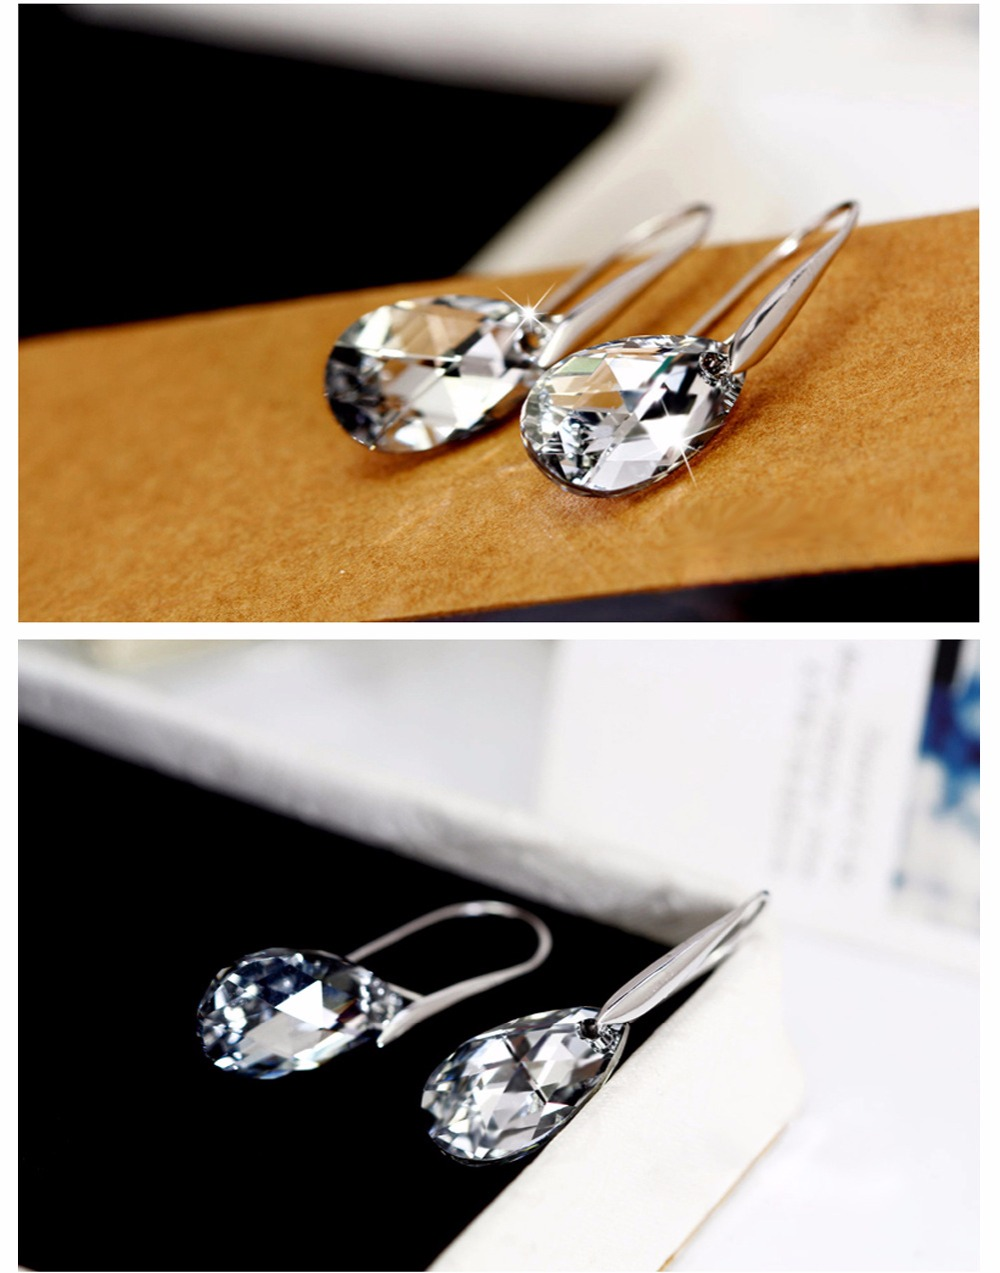 New 925 Sterling Silver 100% Original Crystals From Swarovskis Crystal Earrings Earrings Party 925 Jewelry